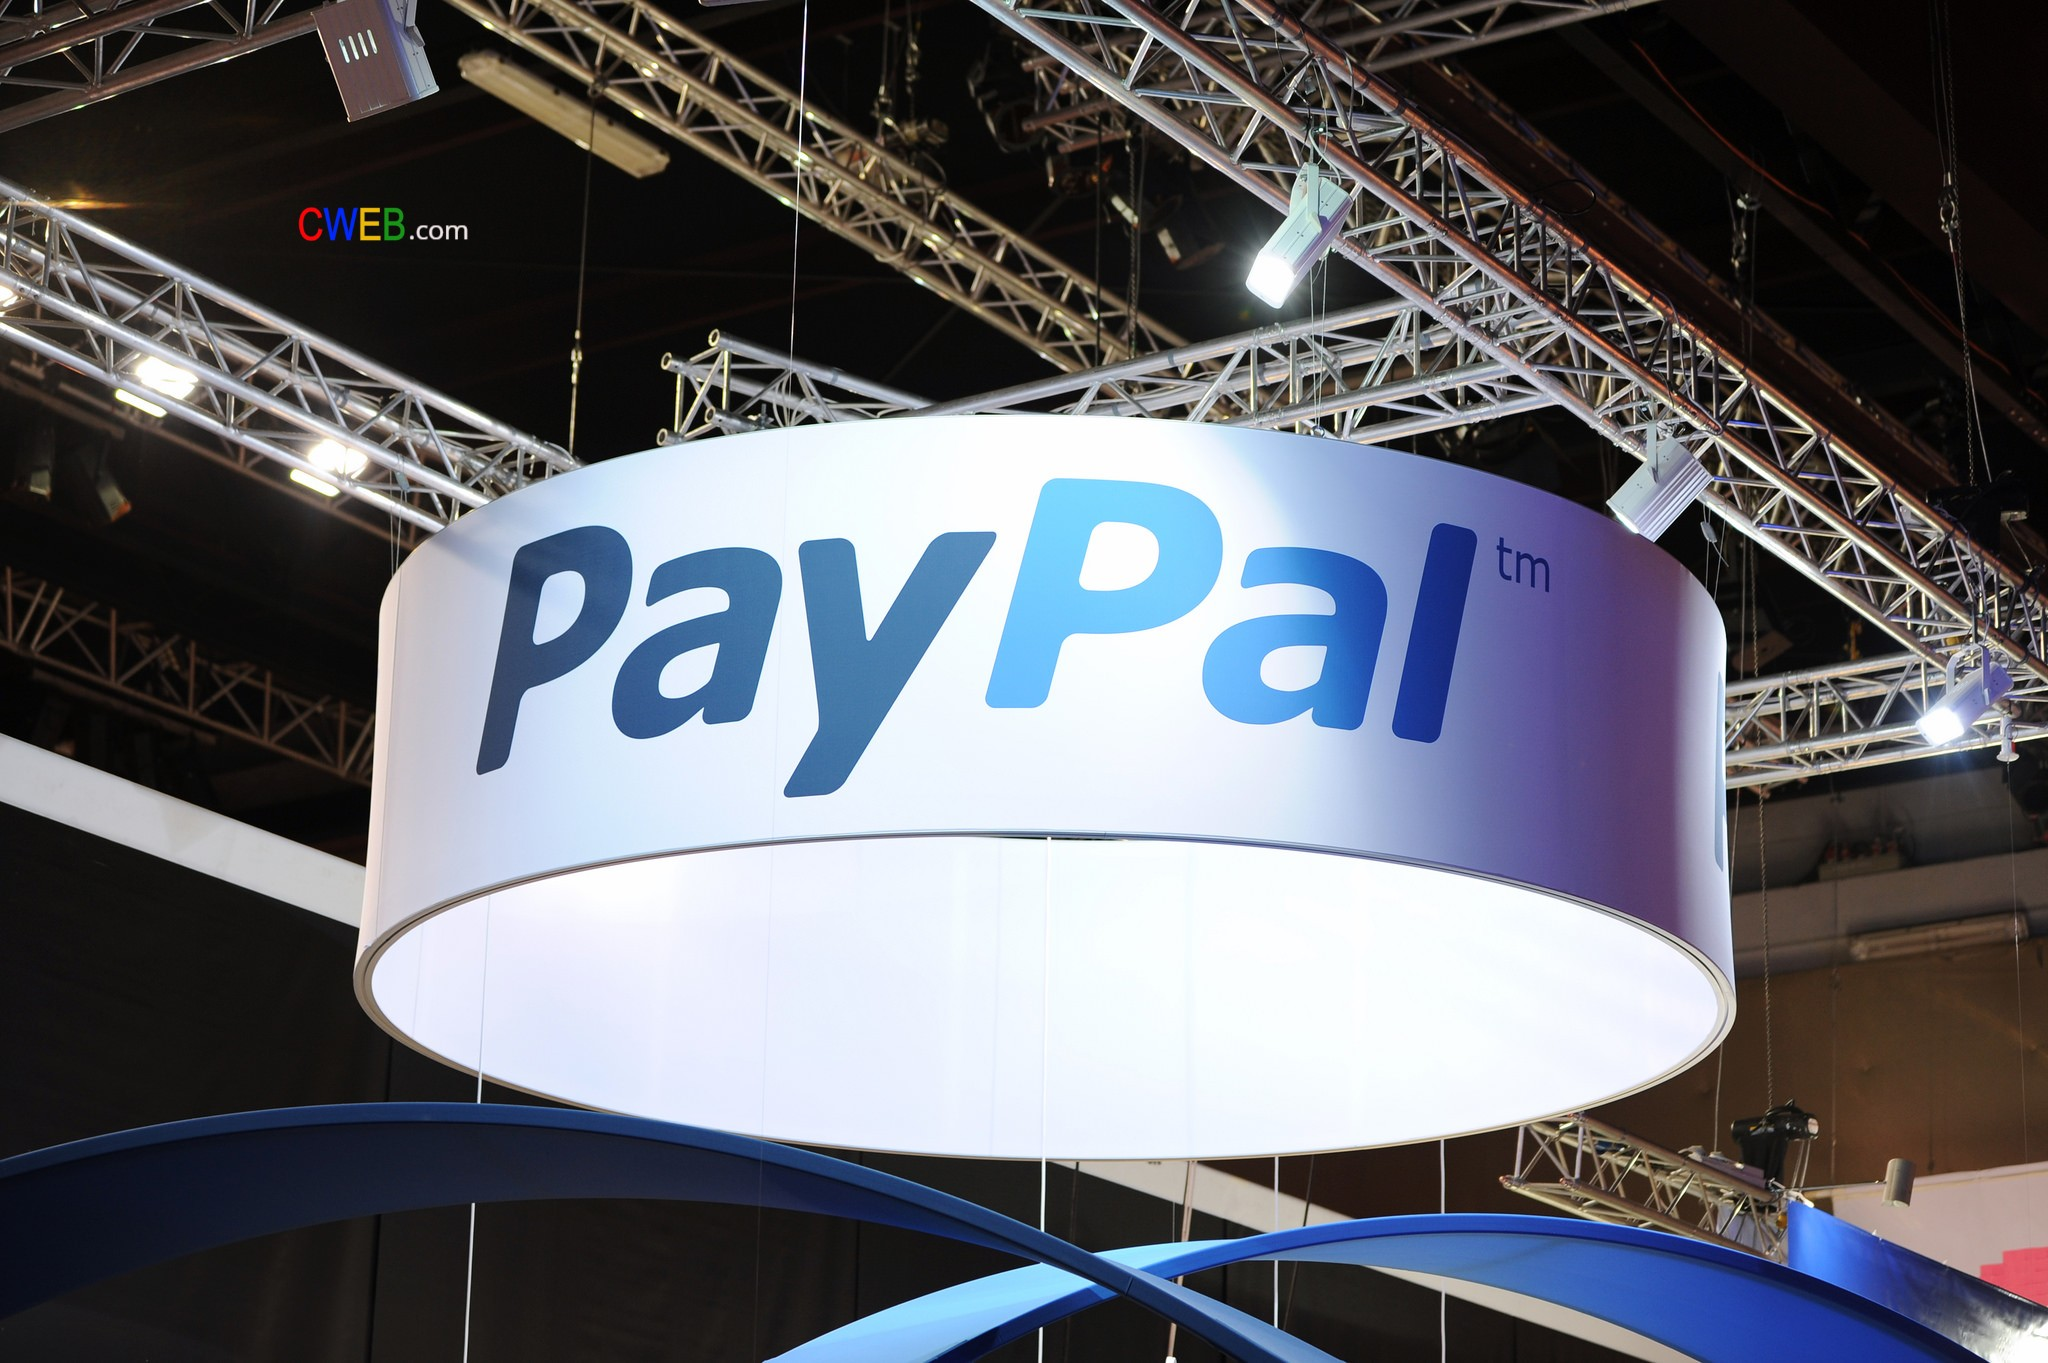 paypal (1) (1)